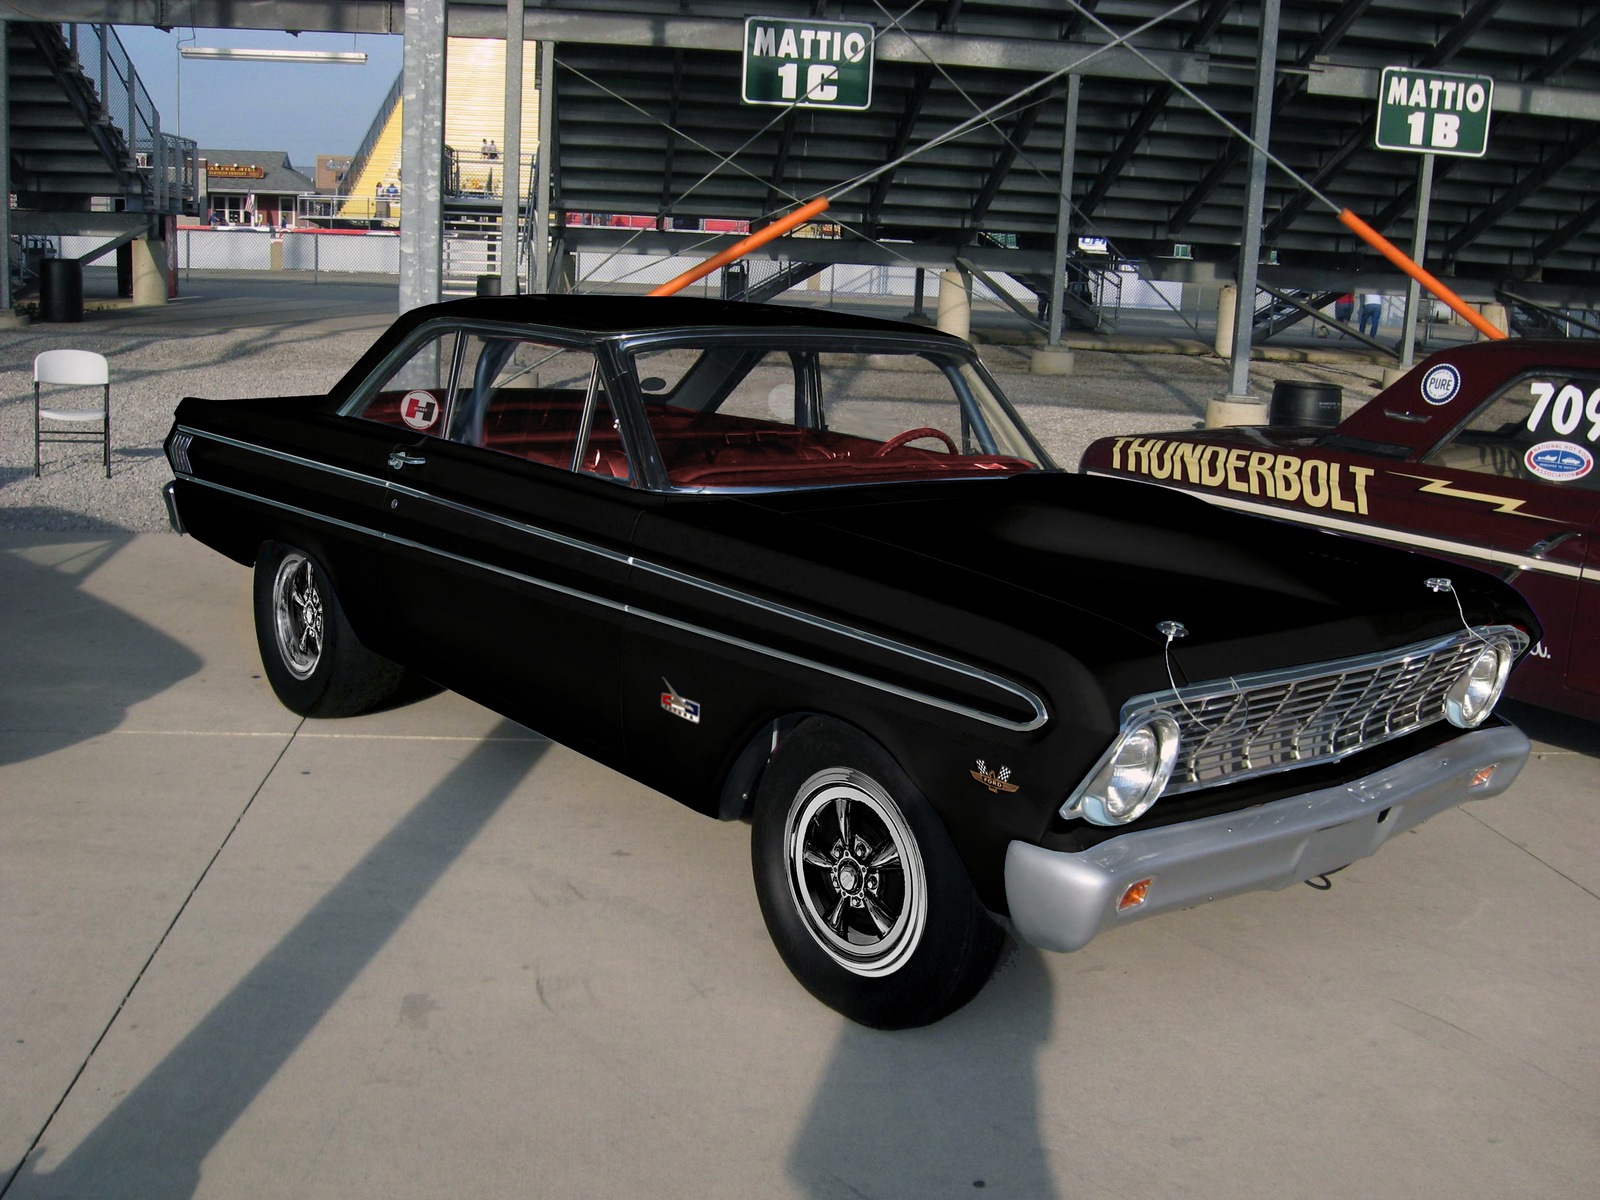 Details about Award Winner Built Trumpeter 1:25 1964 Ford Falcon Sprint  Hardtop